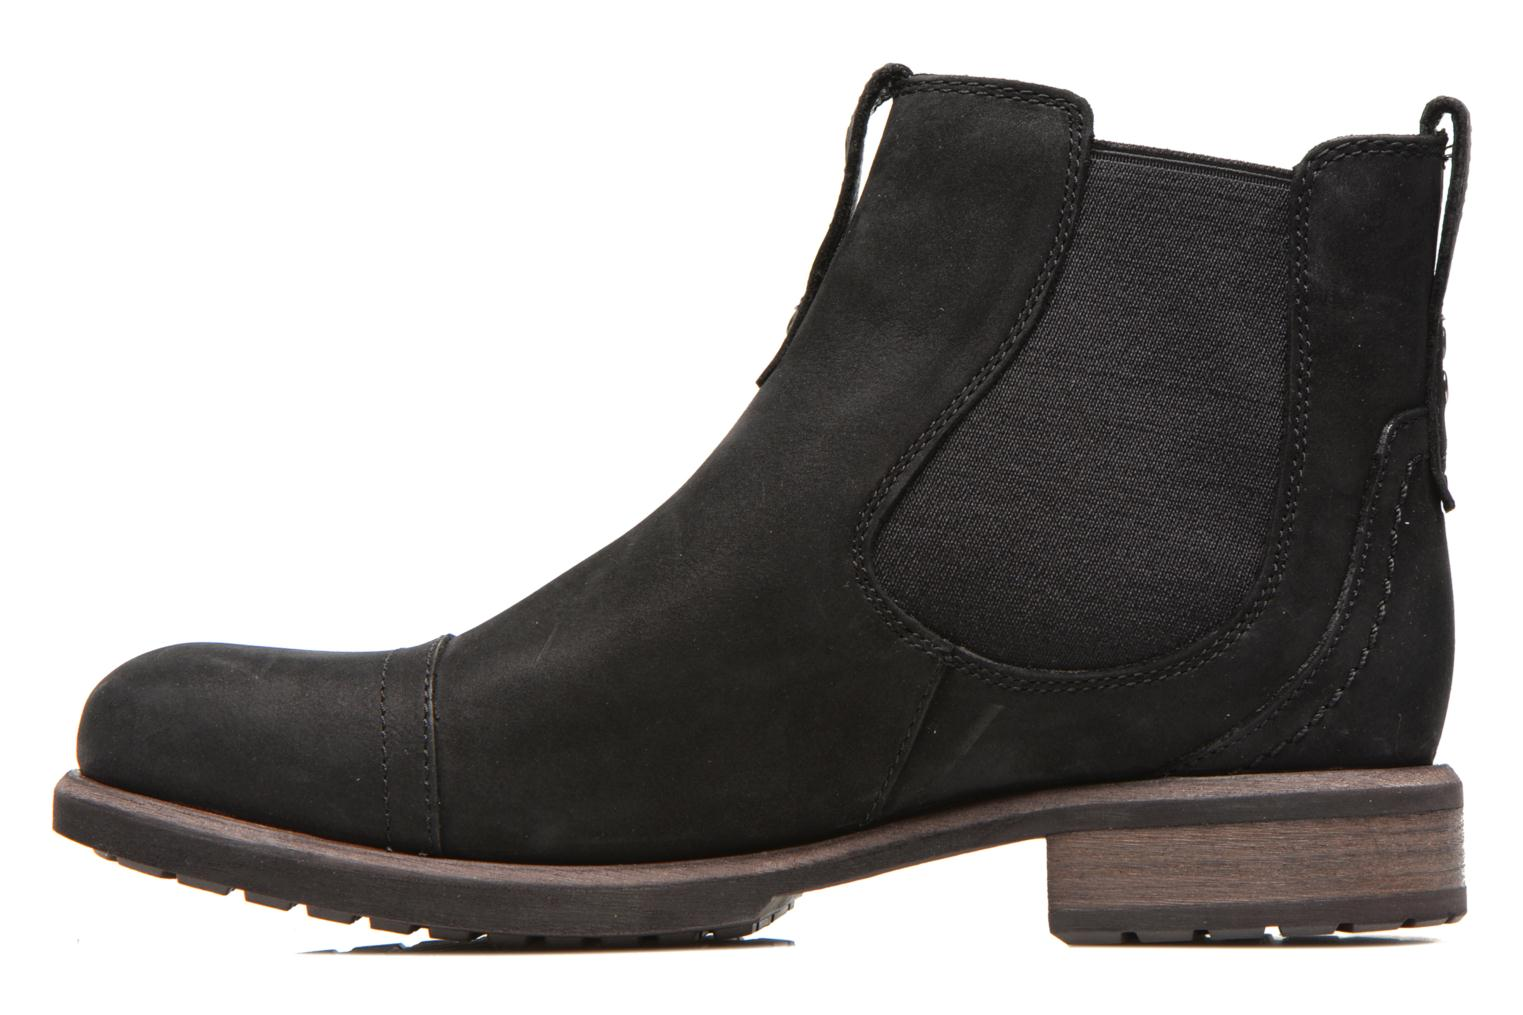 Bottines et boots UGG Gallion Noir vue face